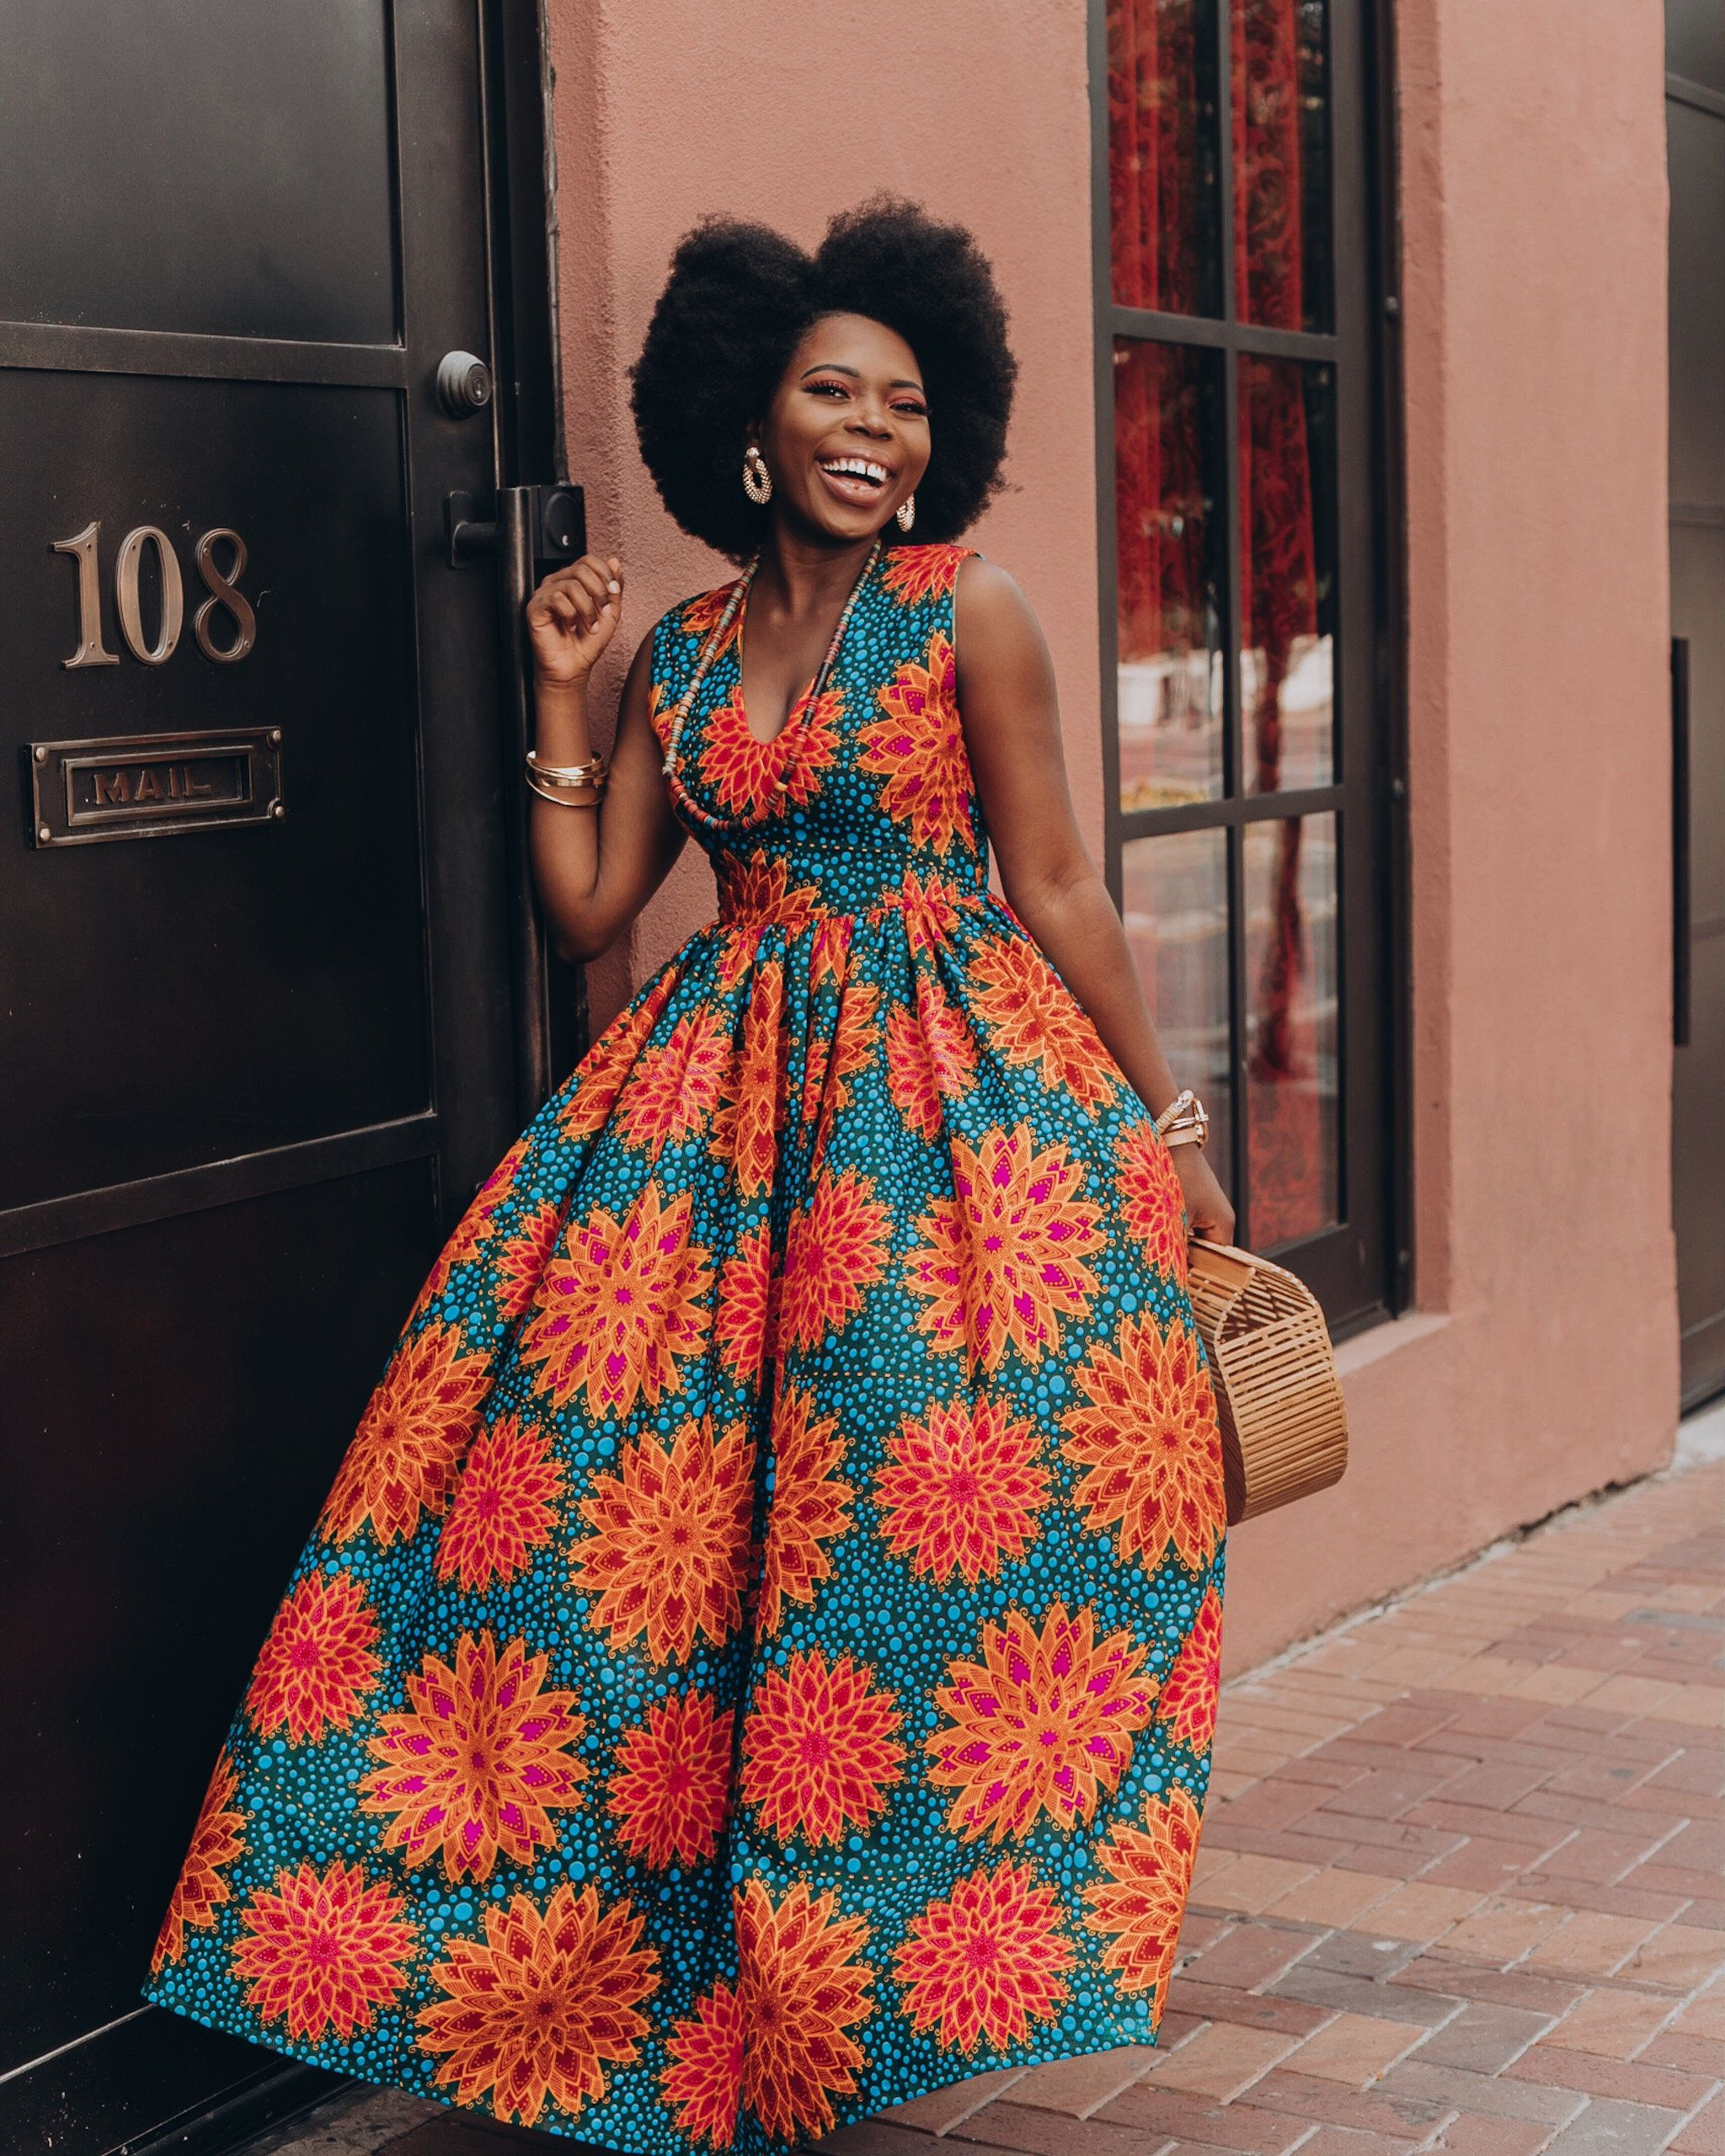 Fashion: Ankara Top African Clothing African Skirt African Print